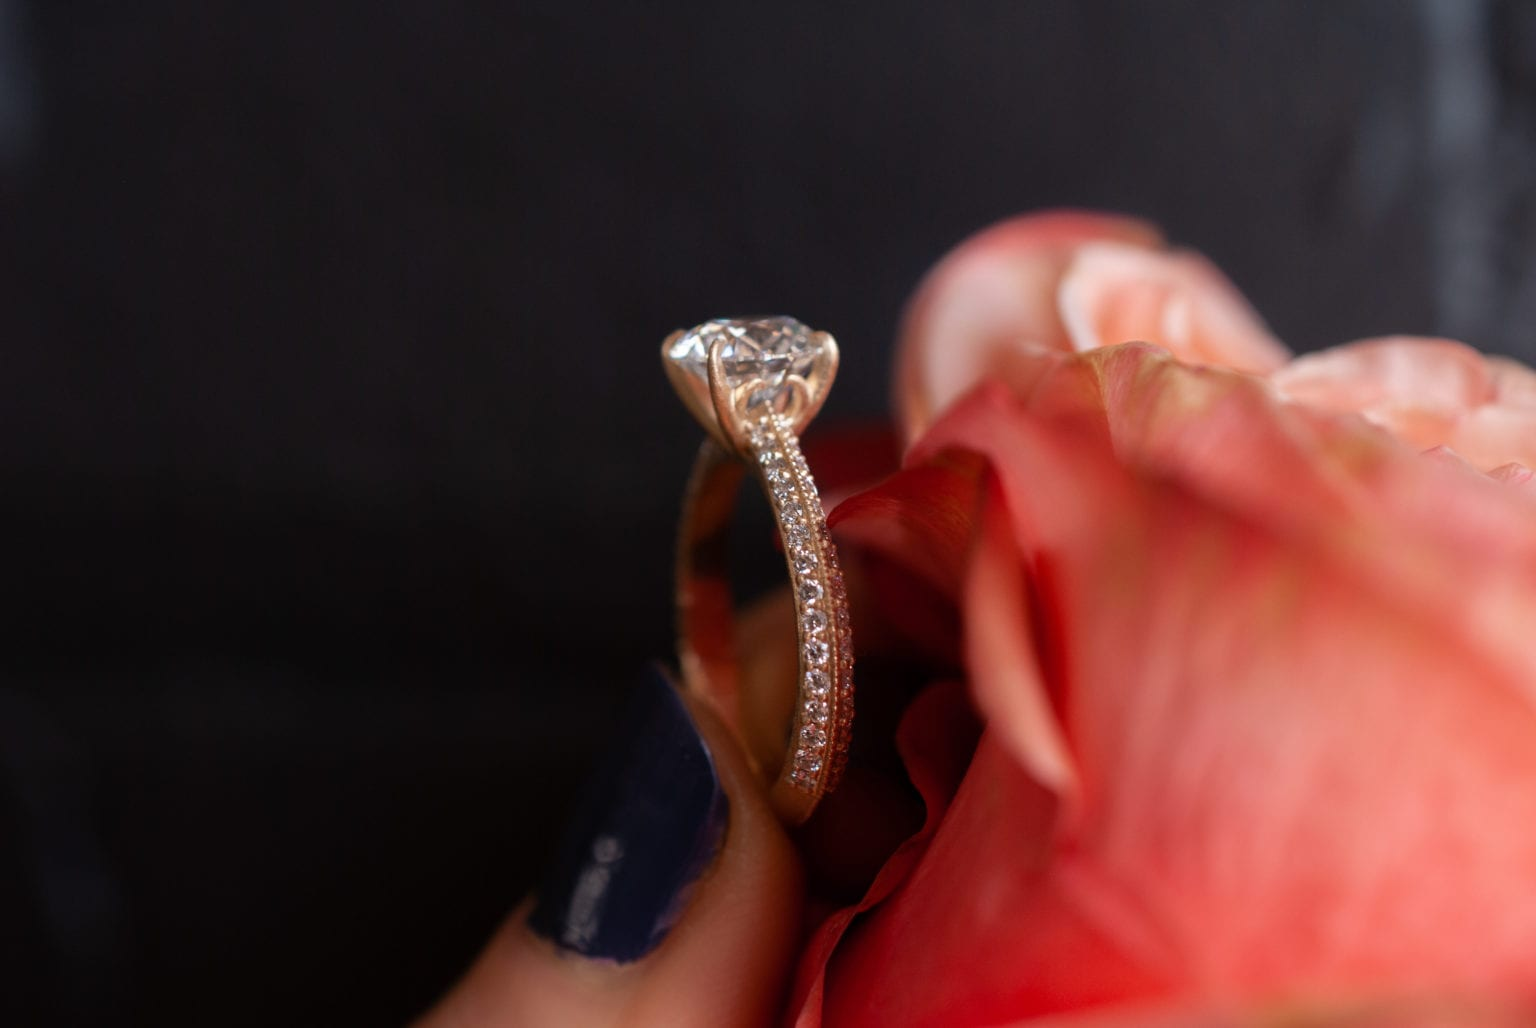 How Did Diamond Rings Become so Popular?